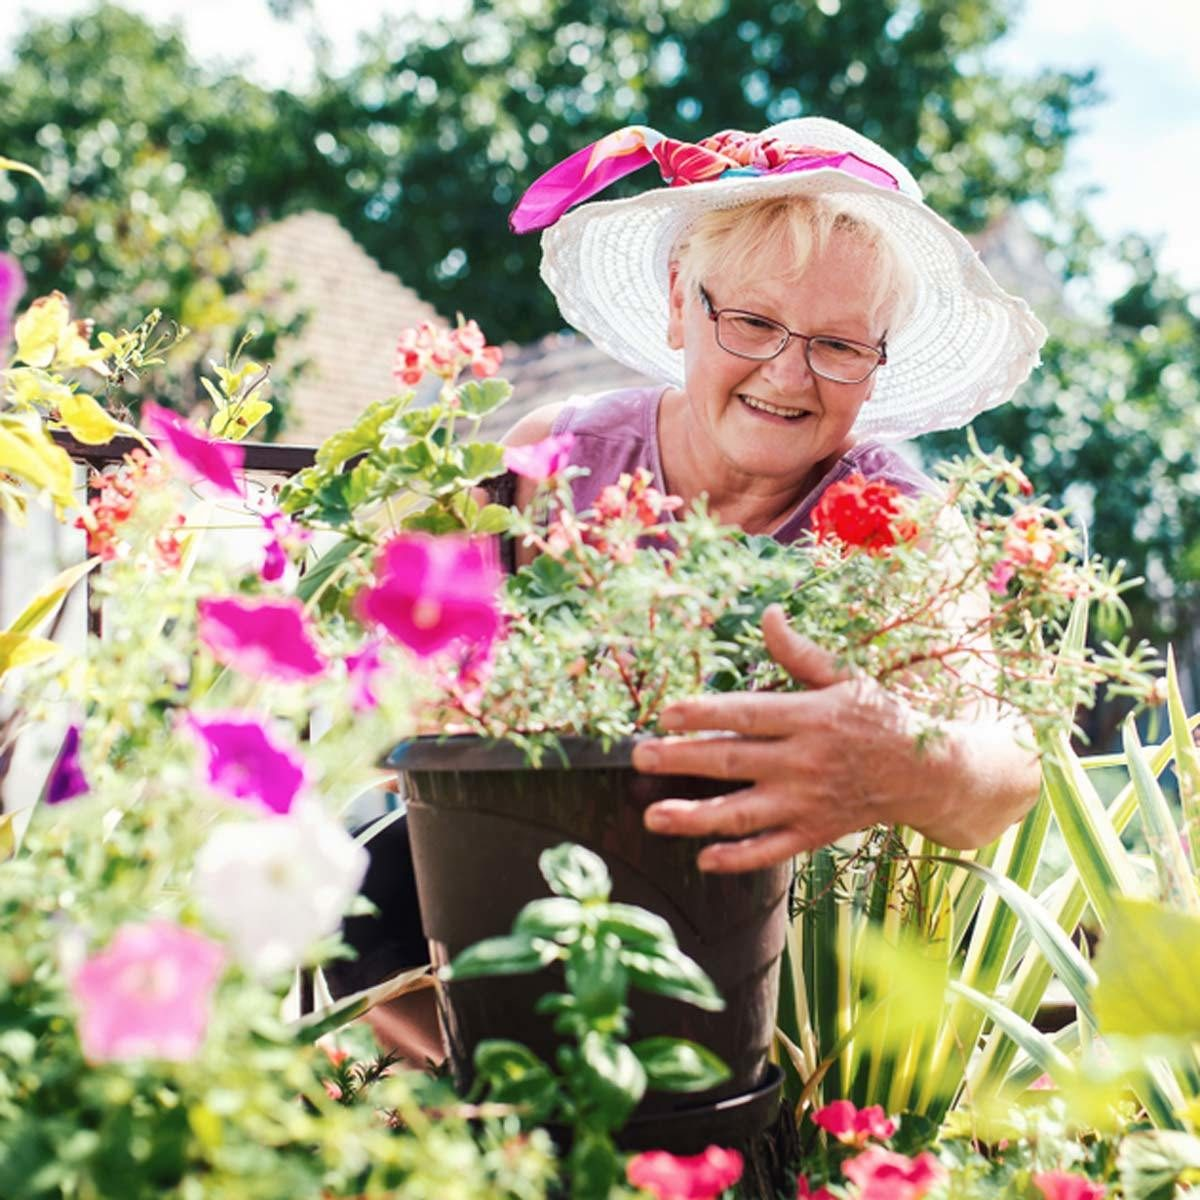 grandma in the garden gardening